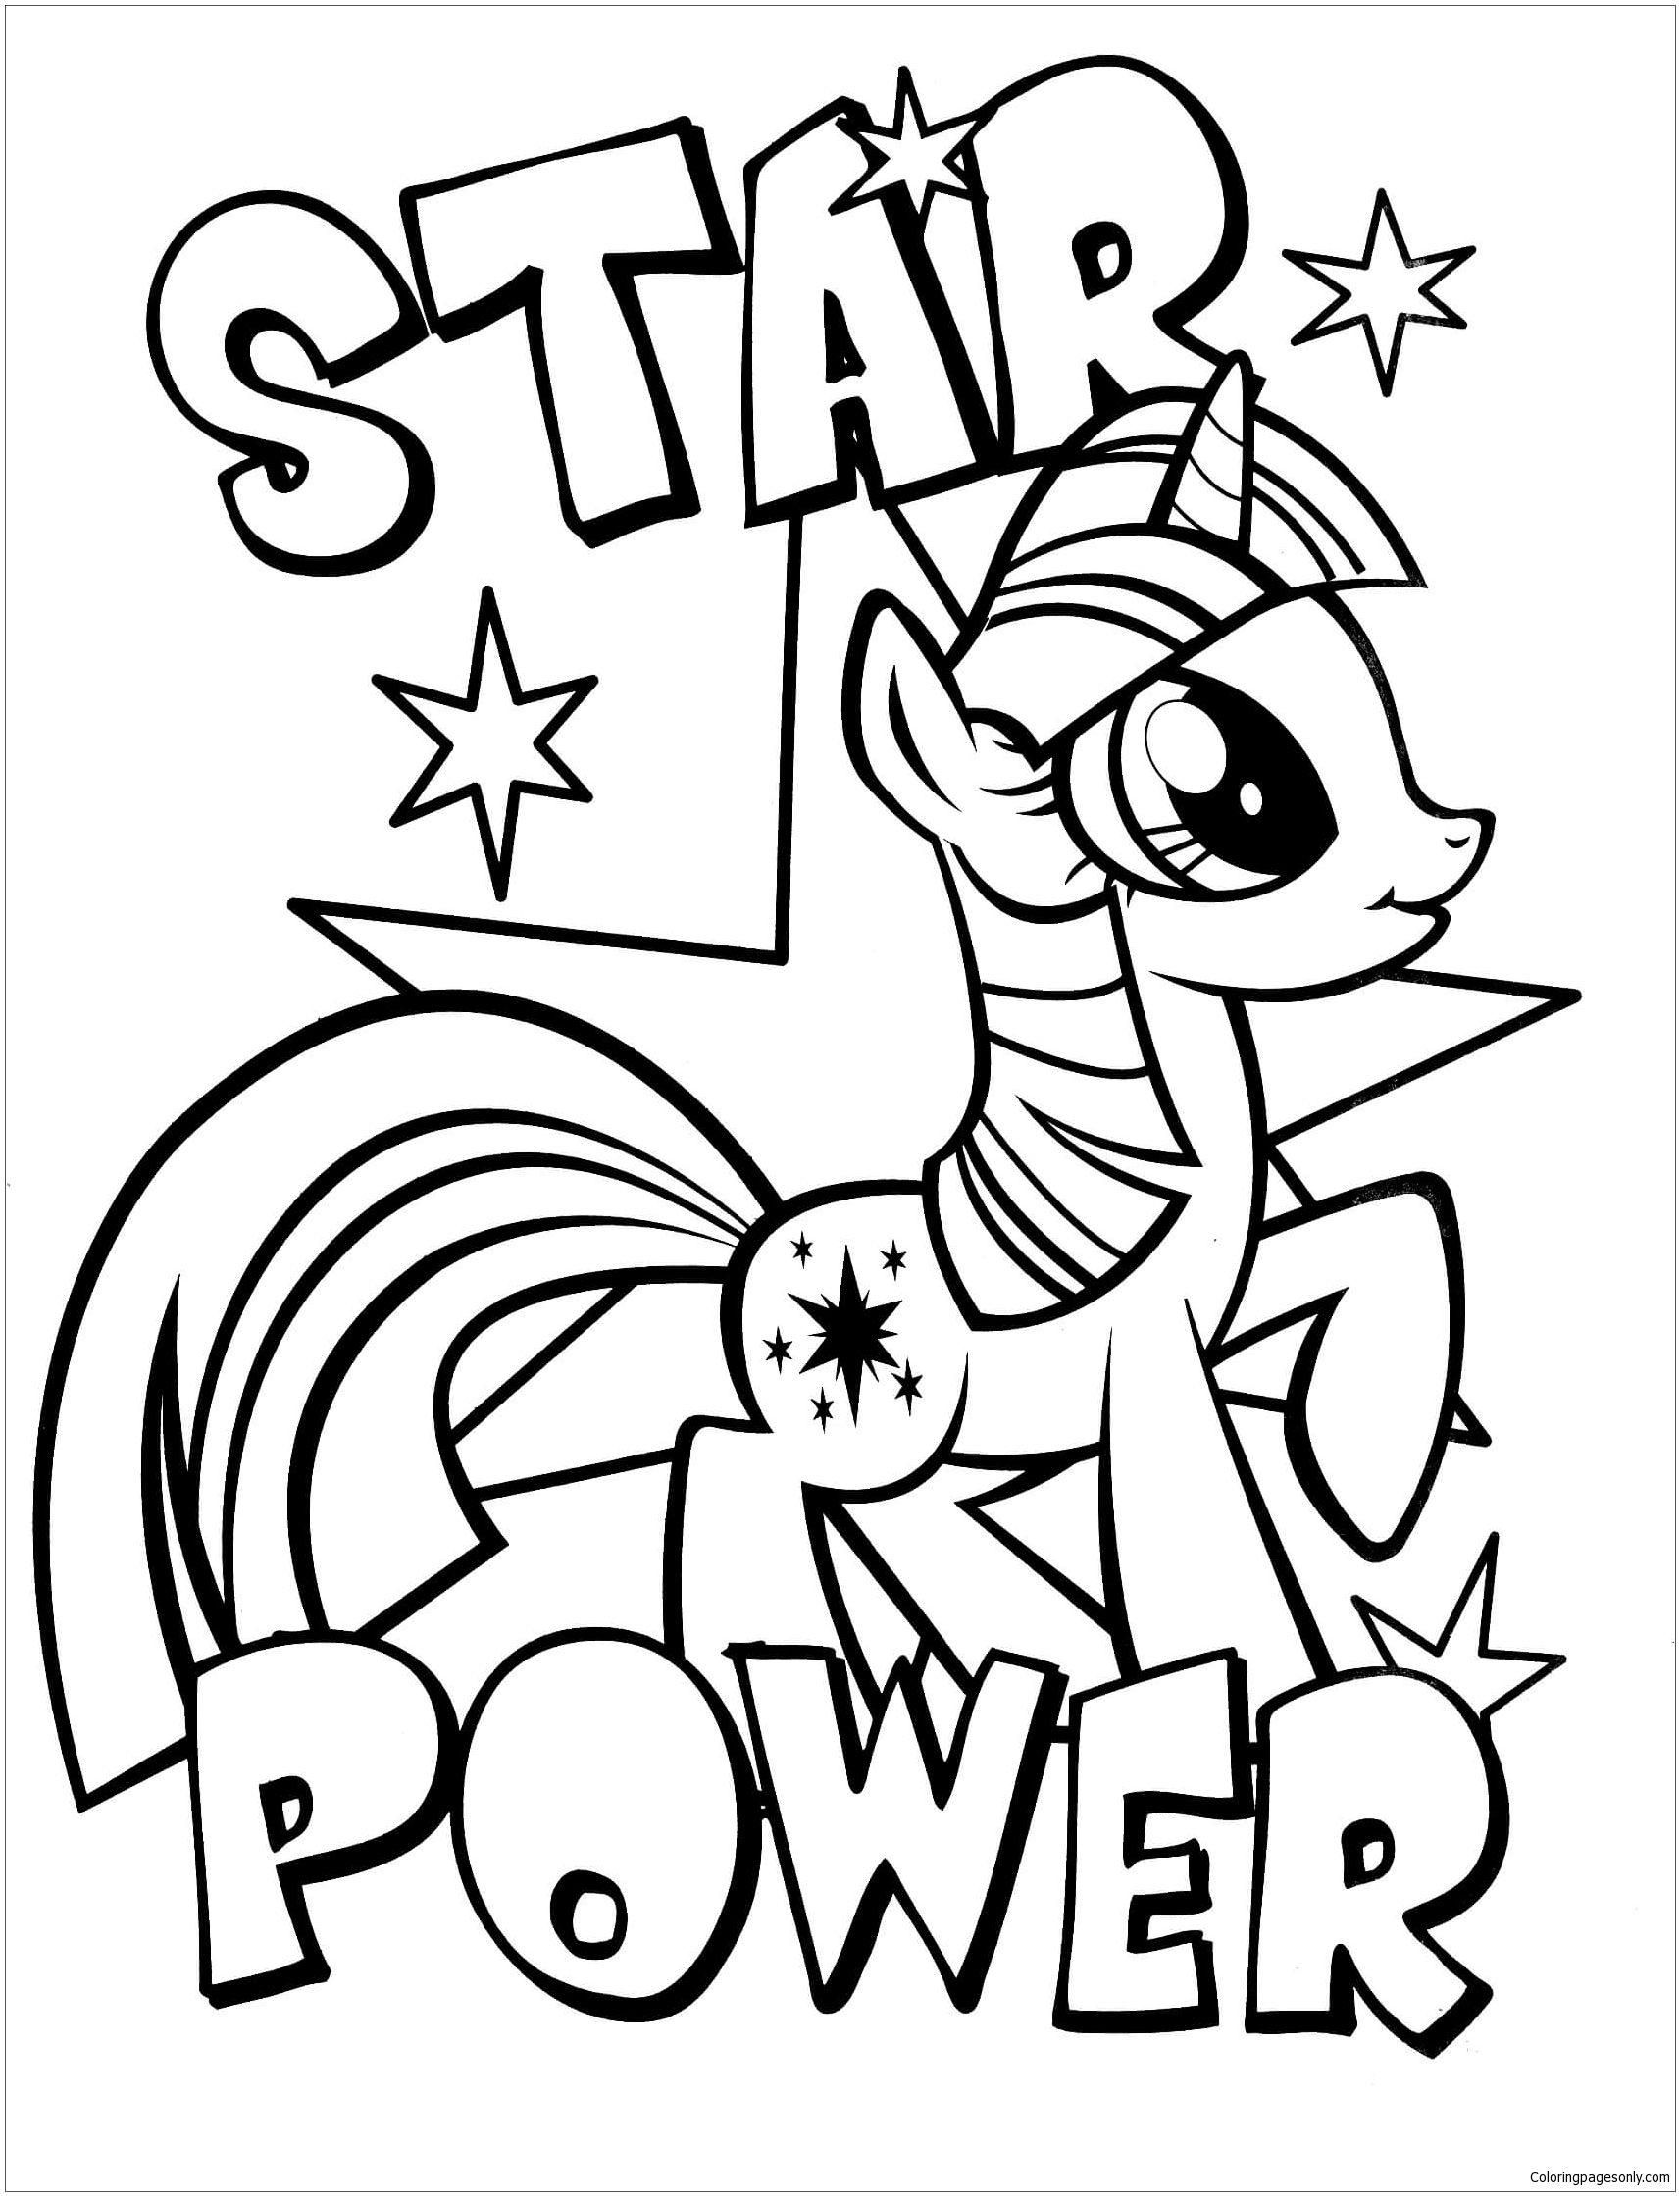 My Little Pony 3 Coloring Page Free Coloring Pages Online Coloring Home